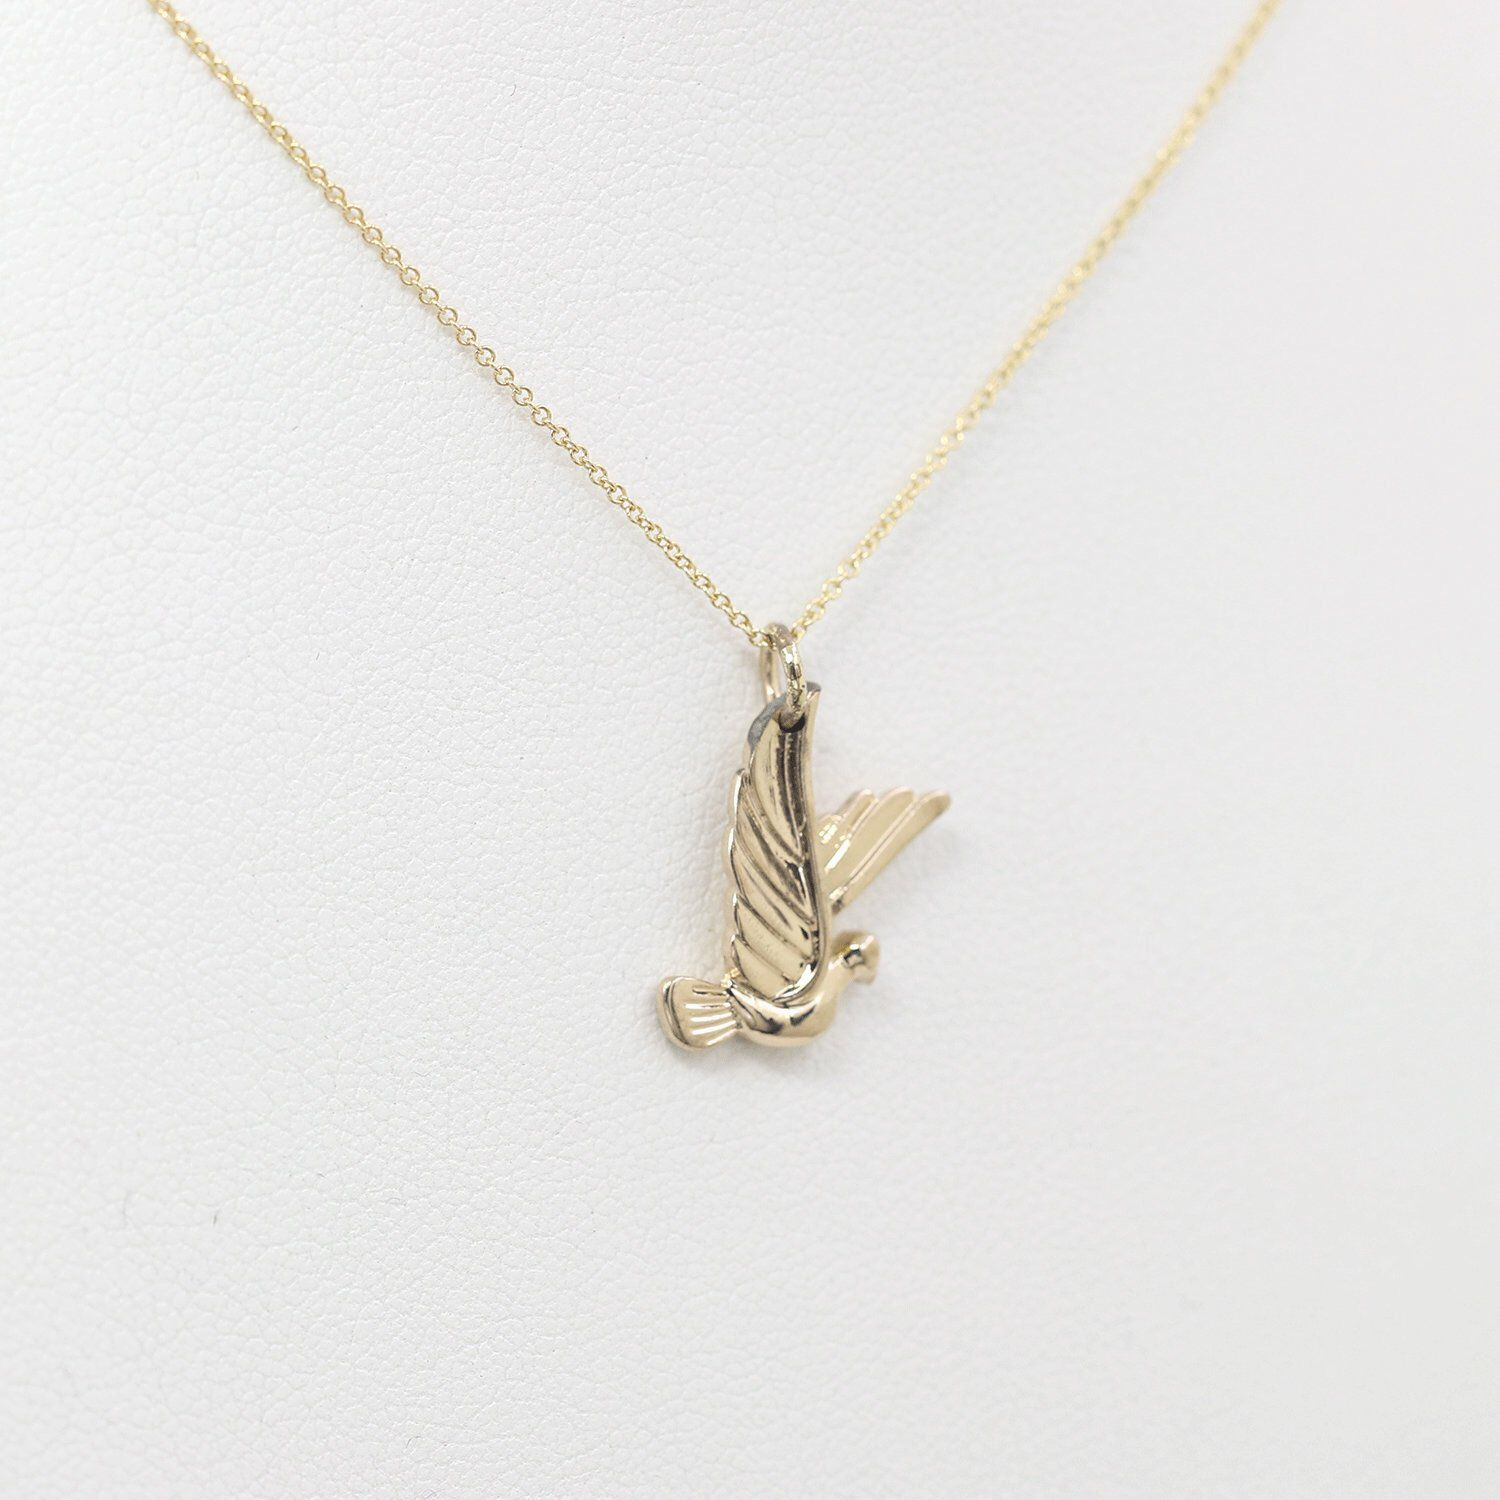 Photo of Solid 14k Bird Necklace. Dainty Gold Necklace. Unique Women's Necklace. 14k Bird Necklace. Simple Gold Necklace. 14k Rose Gold necklace